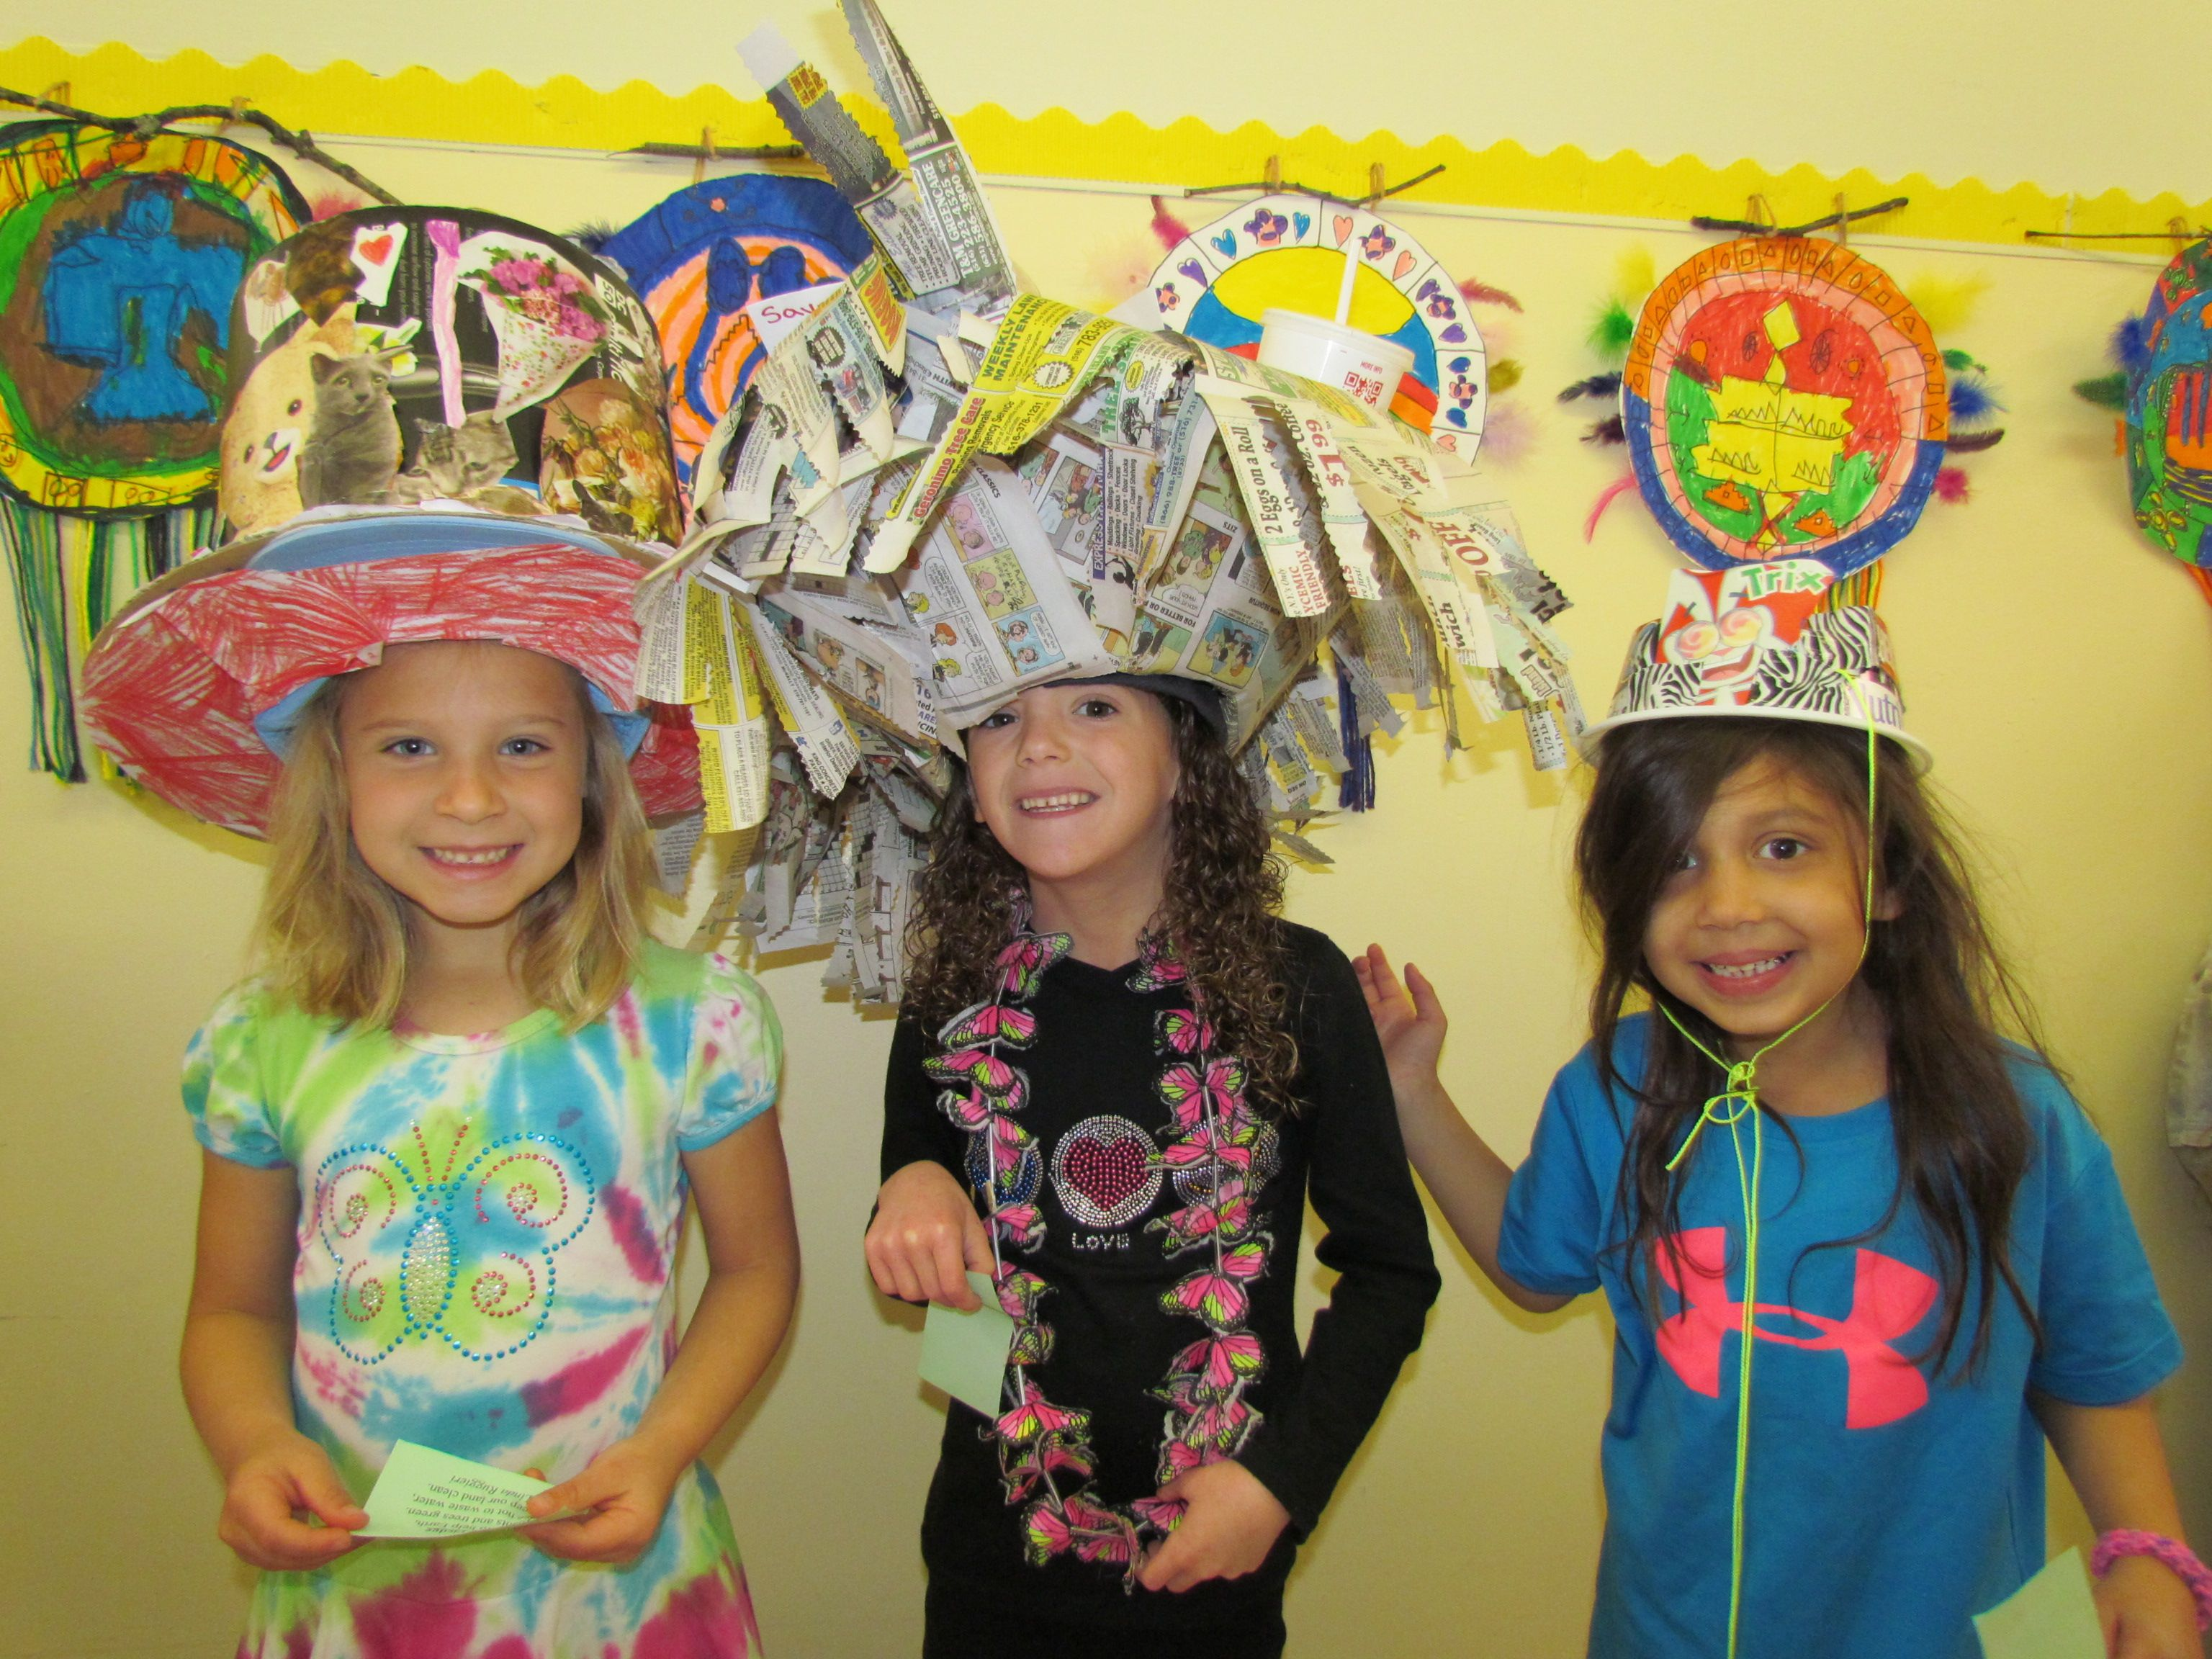 Crazy Hats Made From Recycled Material